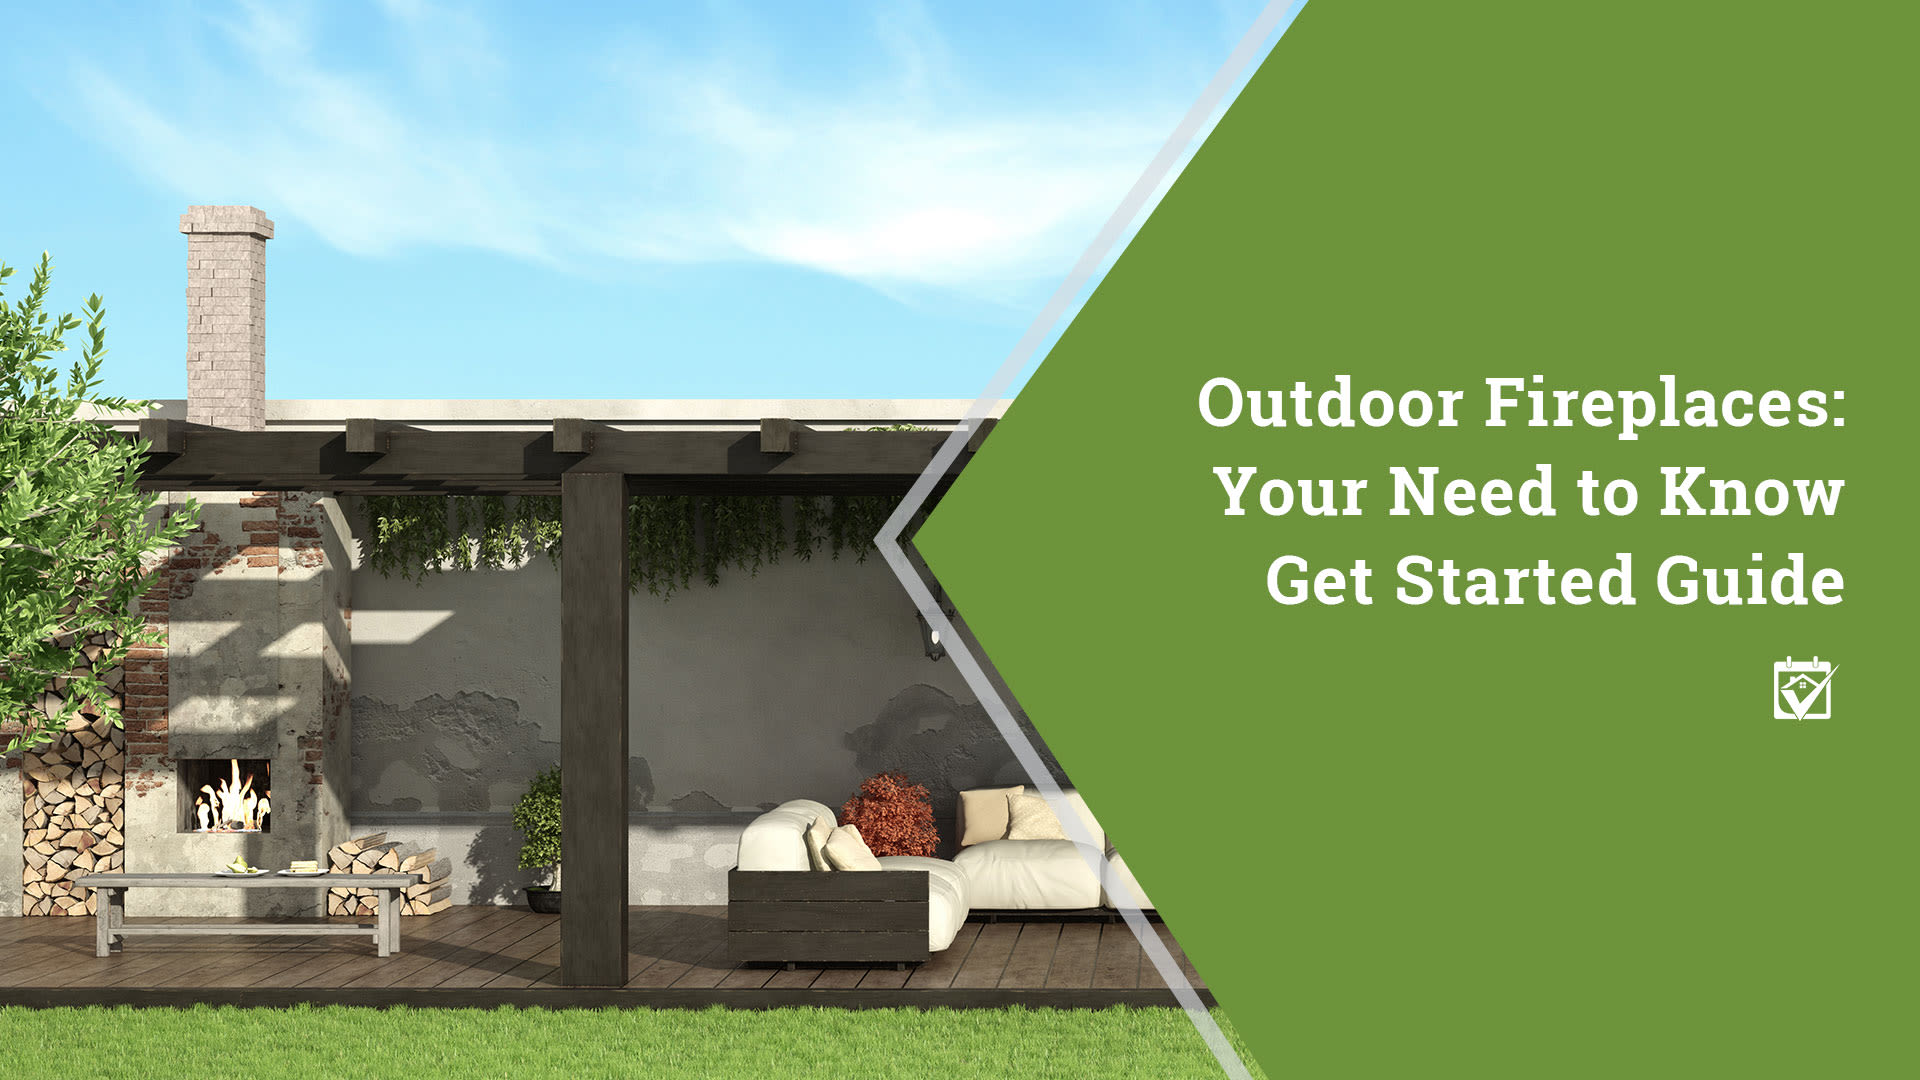 Outdoor Fireplaces: Your Need to Know Get Started Guide